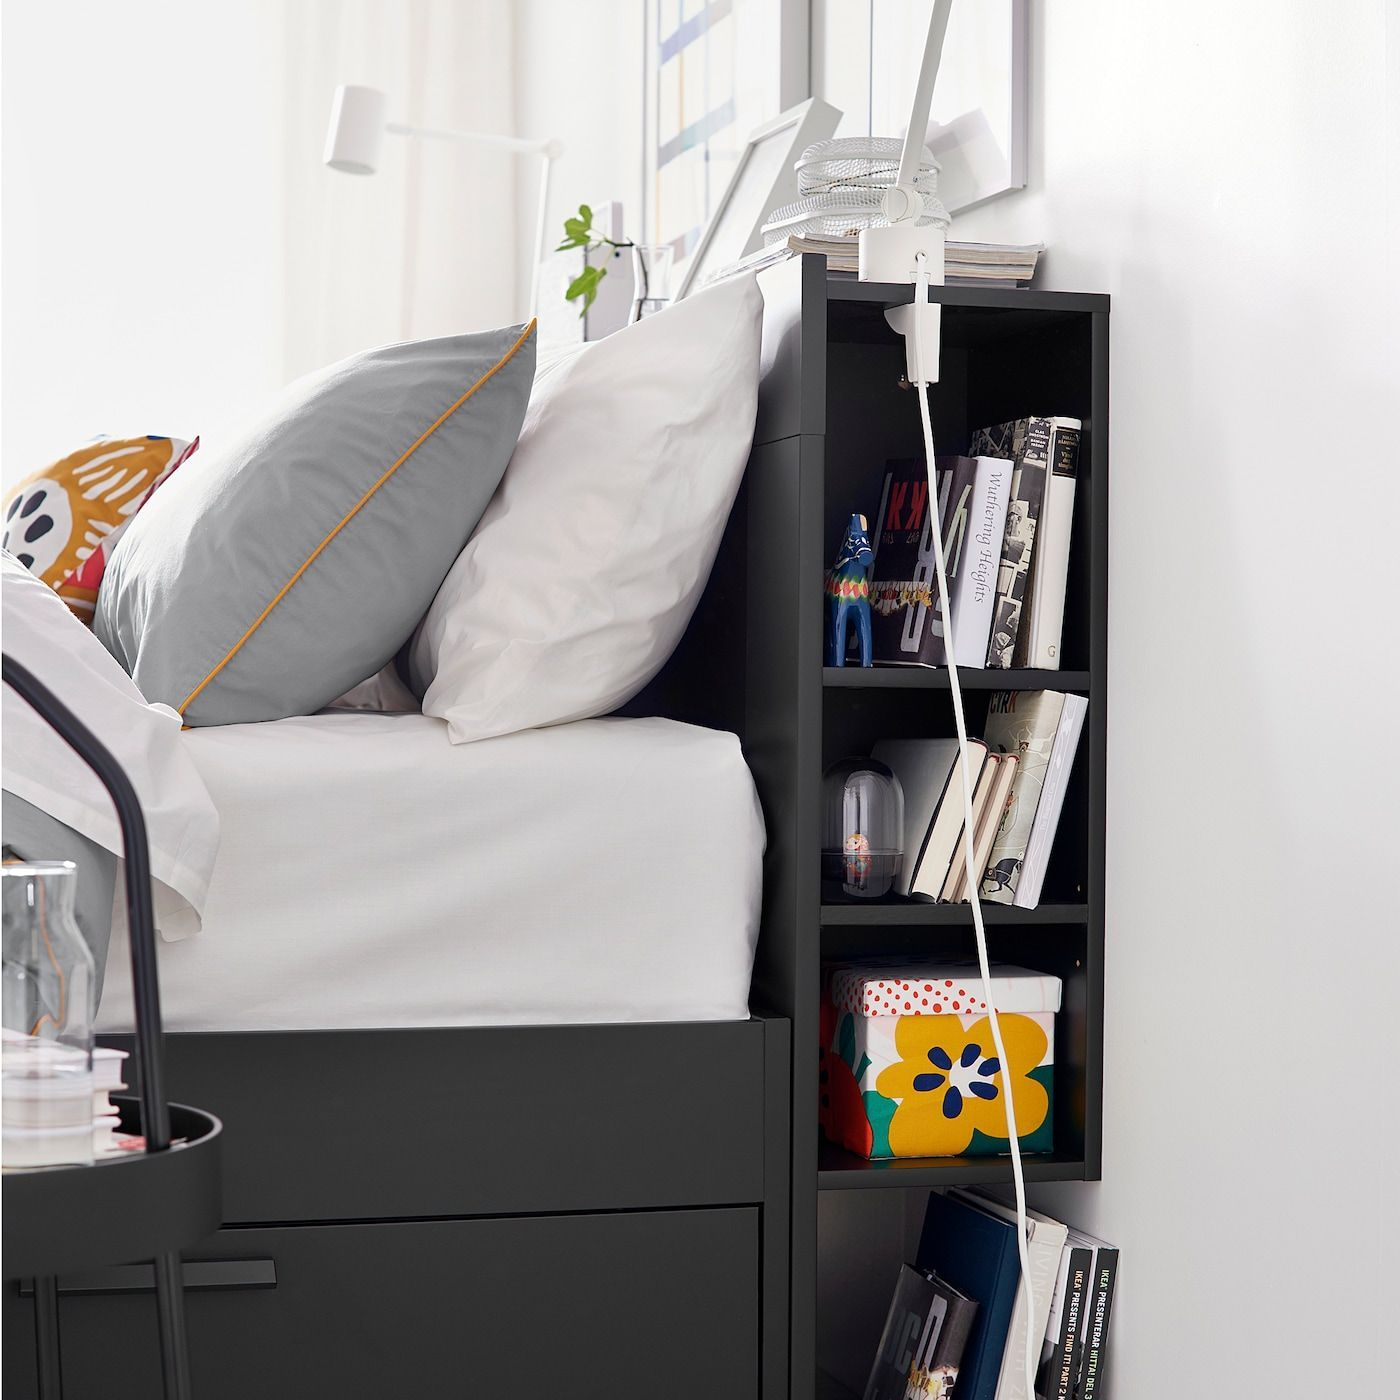 Brimnes Bed Frame With Storage Headboard Black Leirsund Queen Ikea Bed Black Brimnes Frame Headb In 2020 Verstellbare Betten Bett Lagerung Ideen Kopfteil